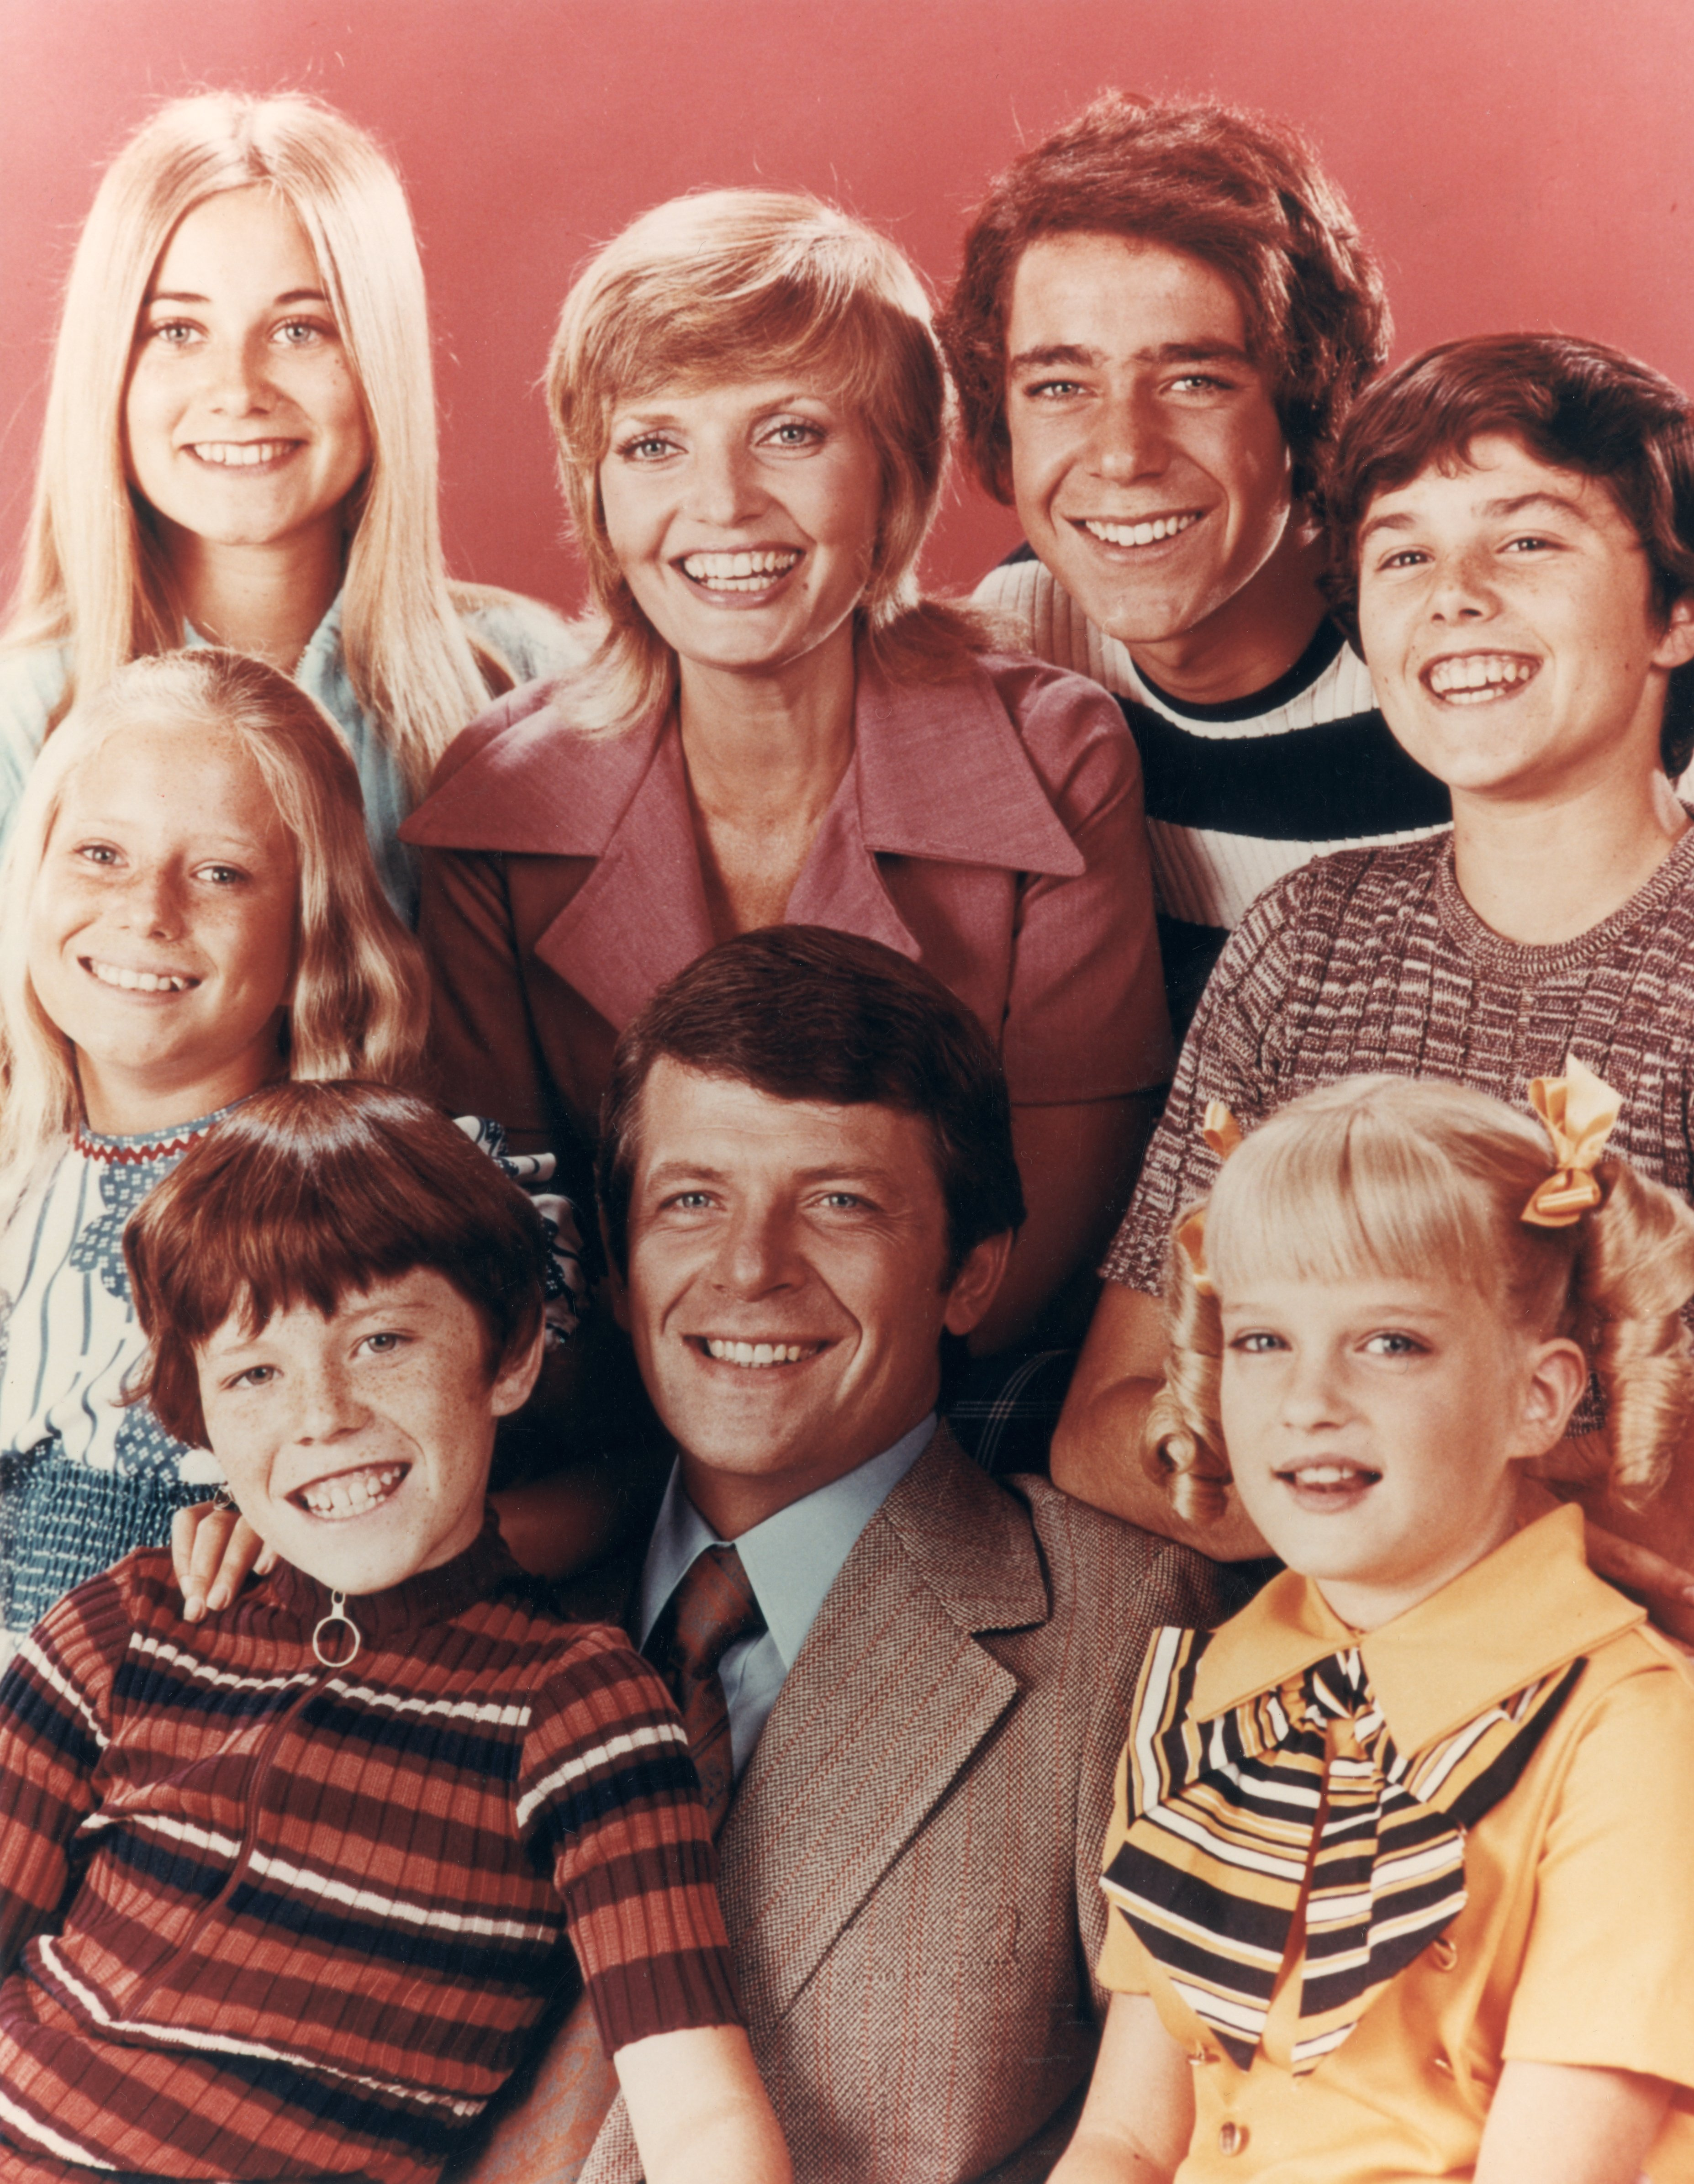 The Brady family, from the television series, 'The Brady Bunch'. Top row (left to right) Maureen McCormick, Florence Henderson, Barry Williams, Christopher Knight; bottom row: Eve Plumb, Mike Lookinland, Robert Reed and Susan Olsen.| Source: Getty Images